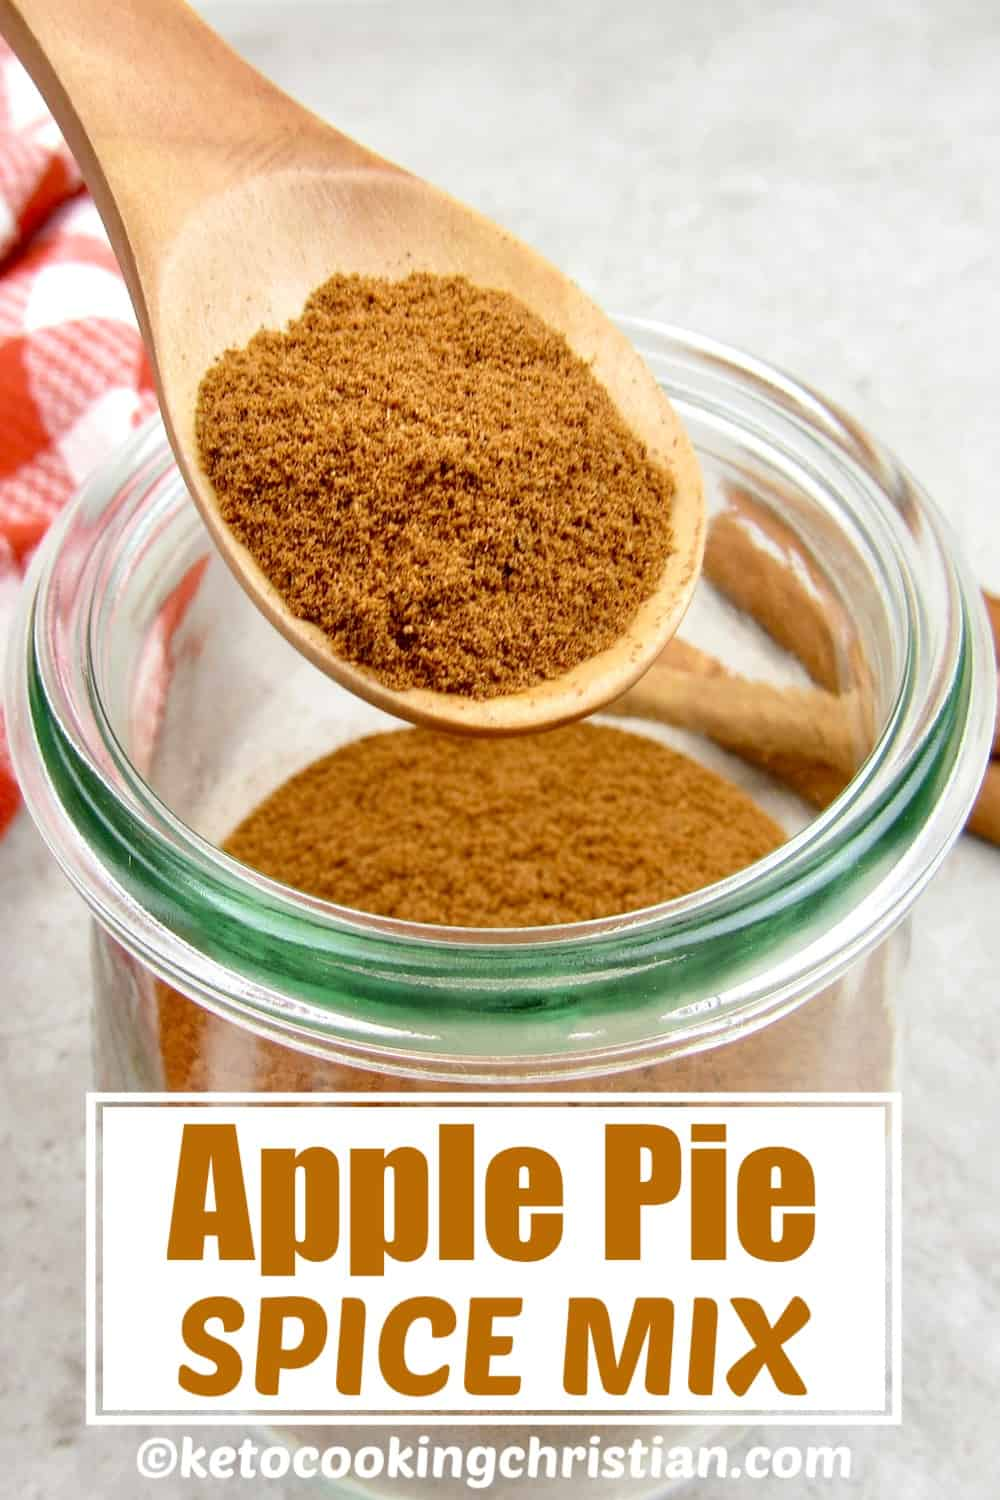 apple pie spice mix being held over glass jar in wooden spoon